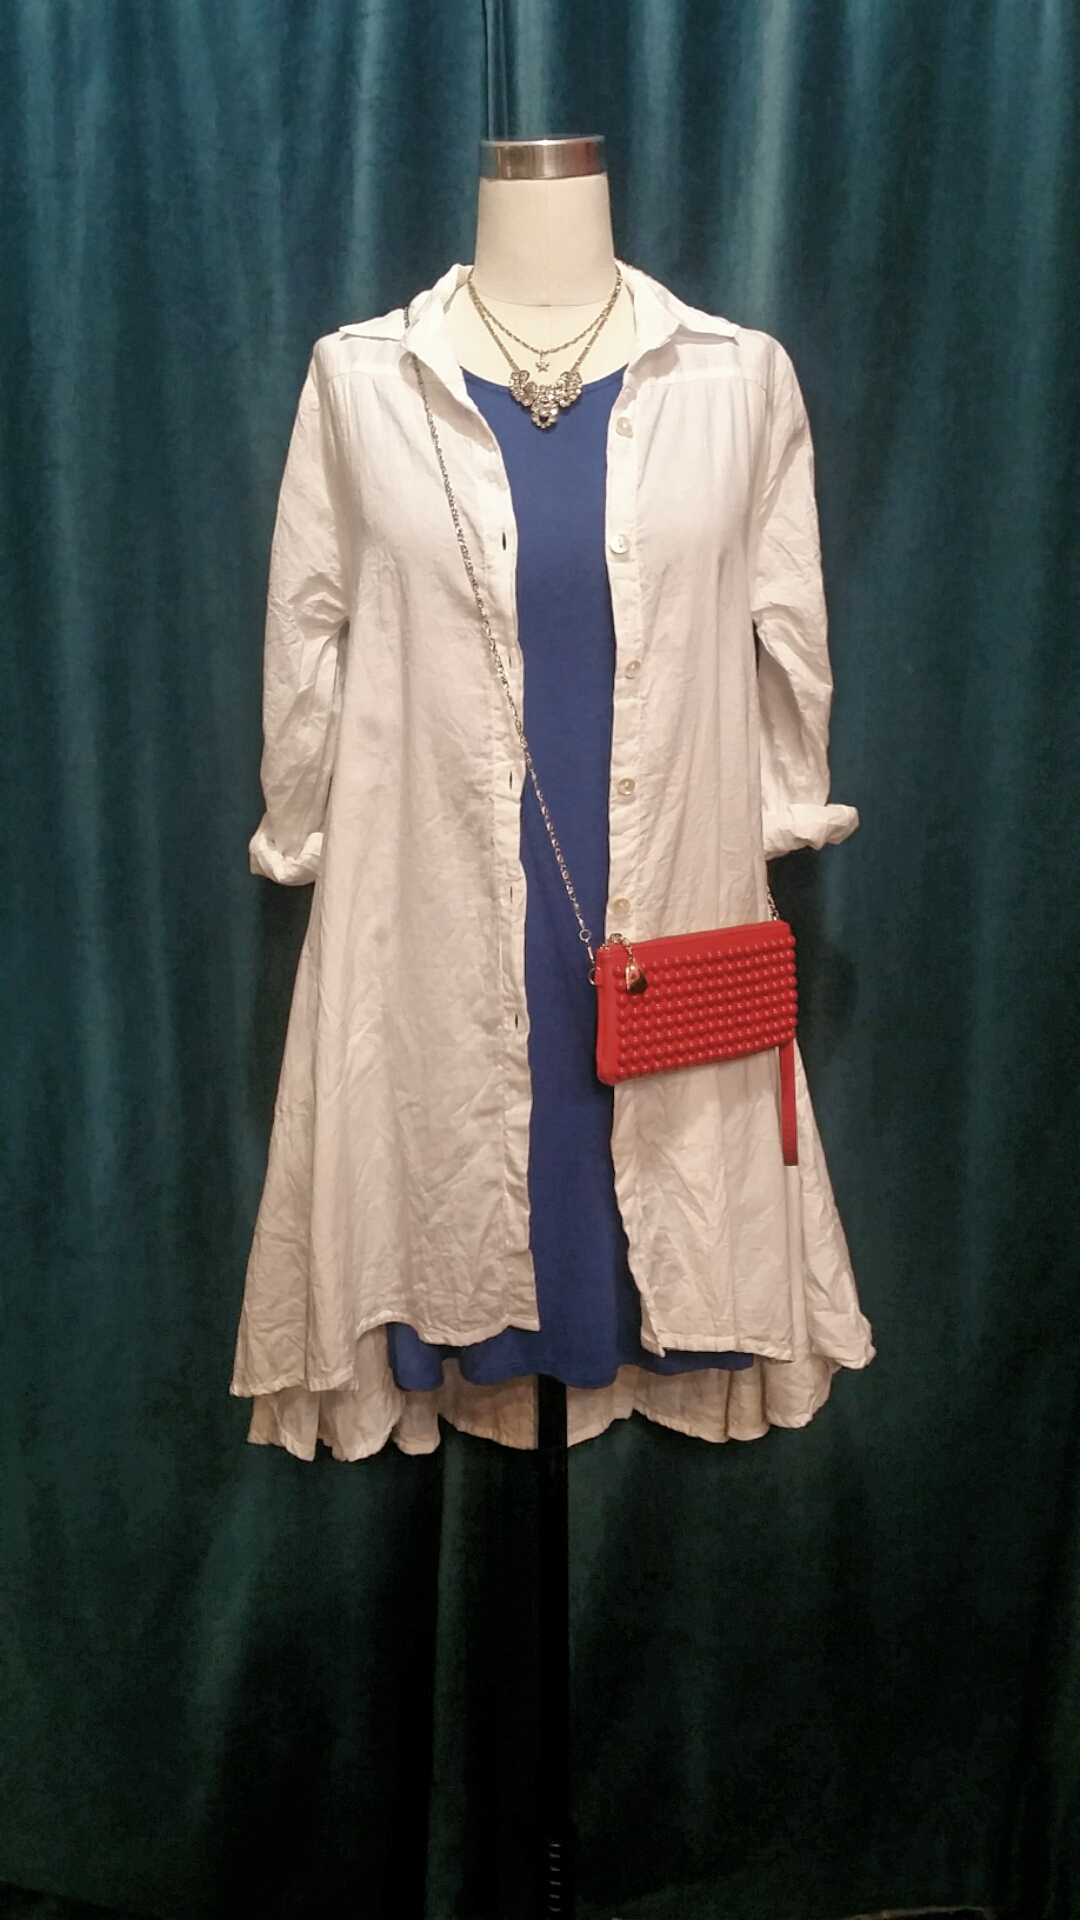 Hourglass Lilly dress, sizes XS/S and S/M, $46. Tulip shirt, sizes XS-L, $114. Red convertible clutch: $28